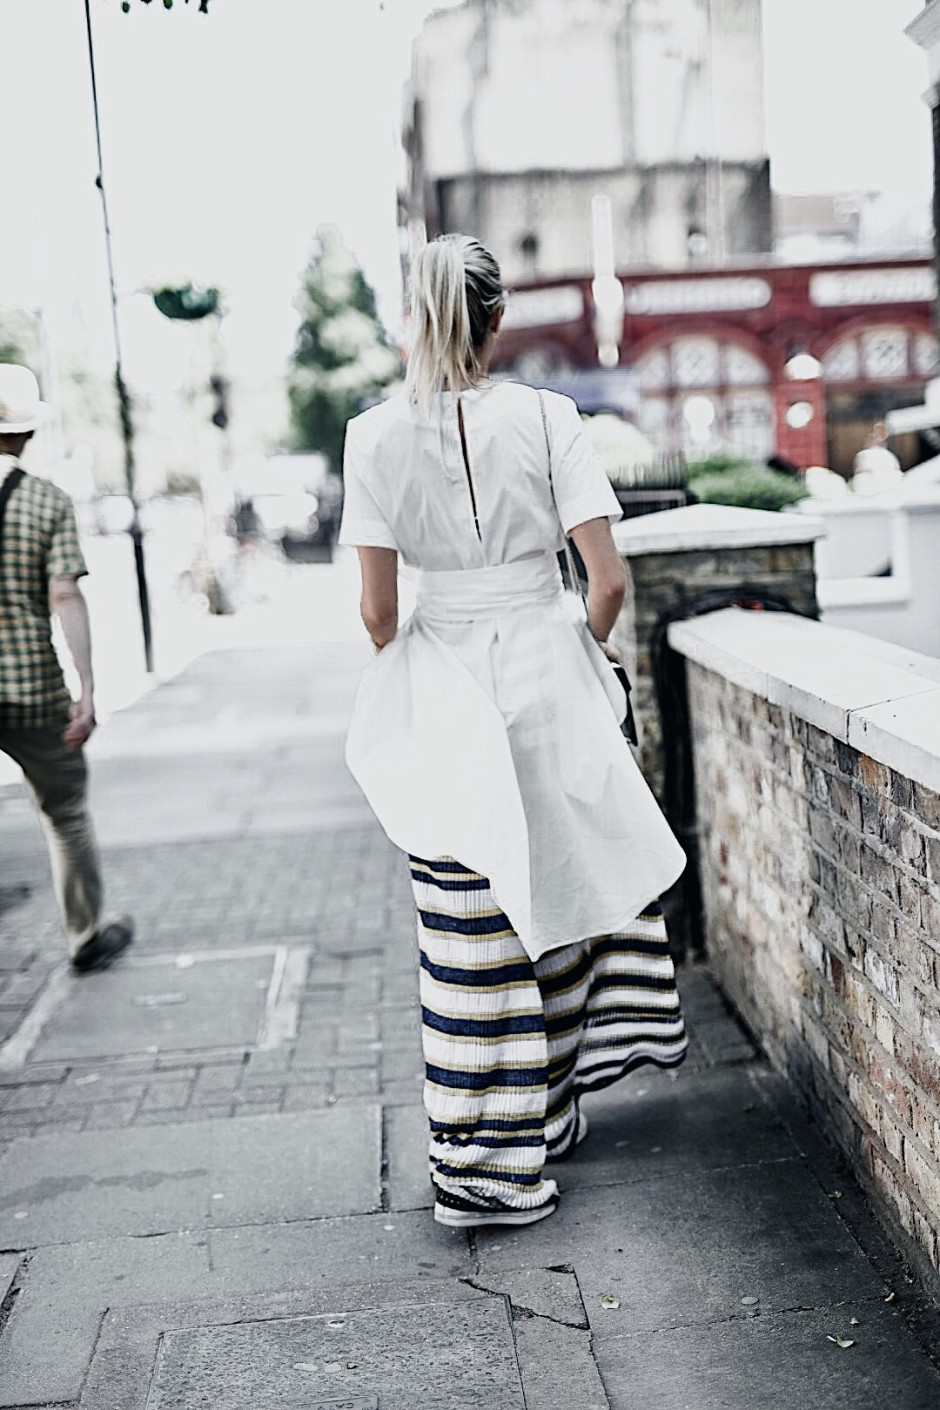 M Missoni wide leg trousers, Fendi Sunglasses, Storets White long top, Bulgari bag, The outnet, London, Maida Vale